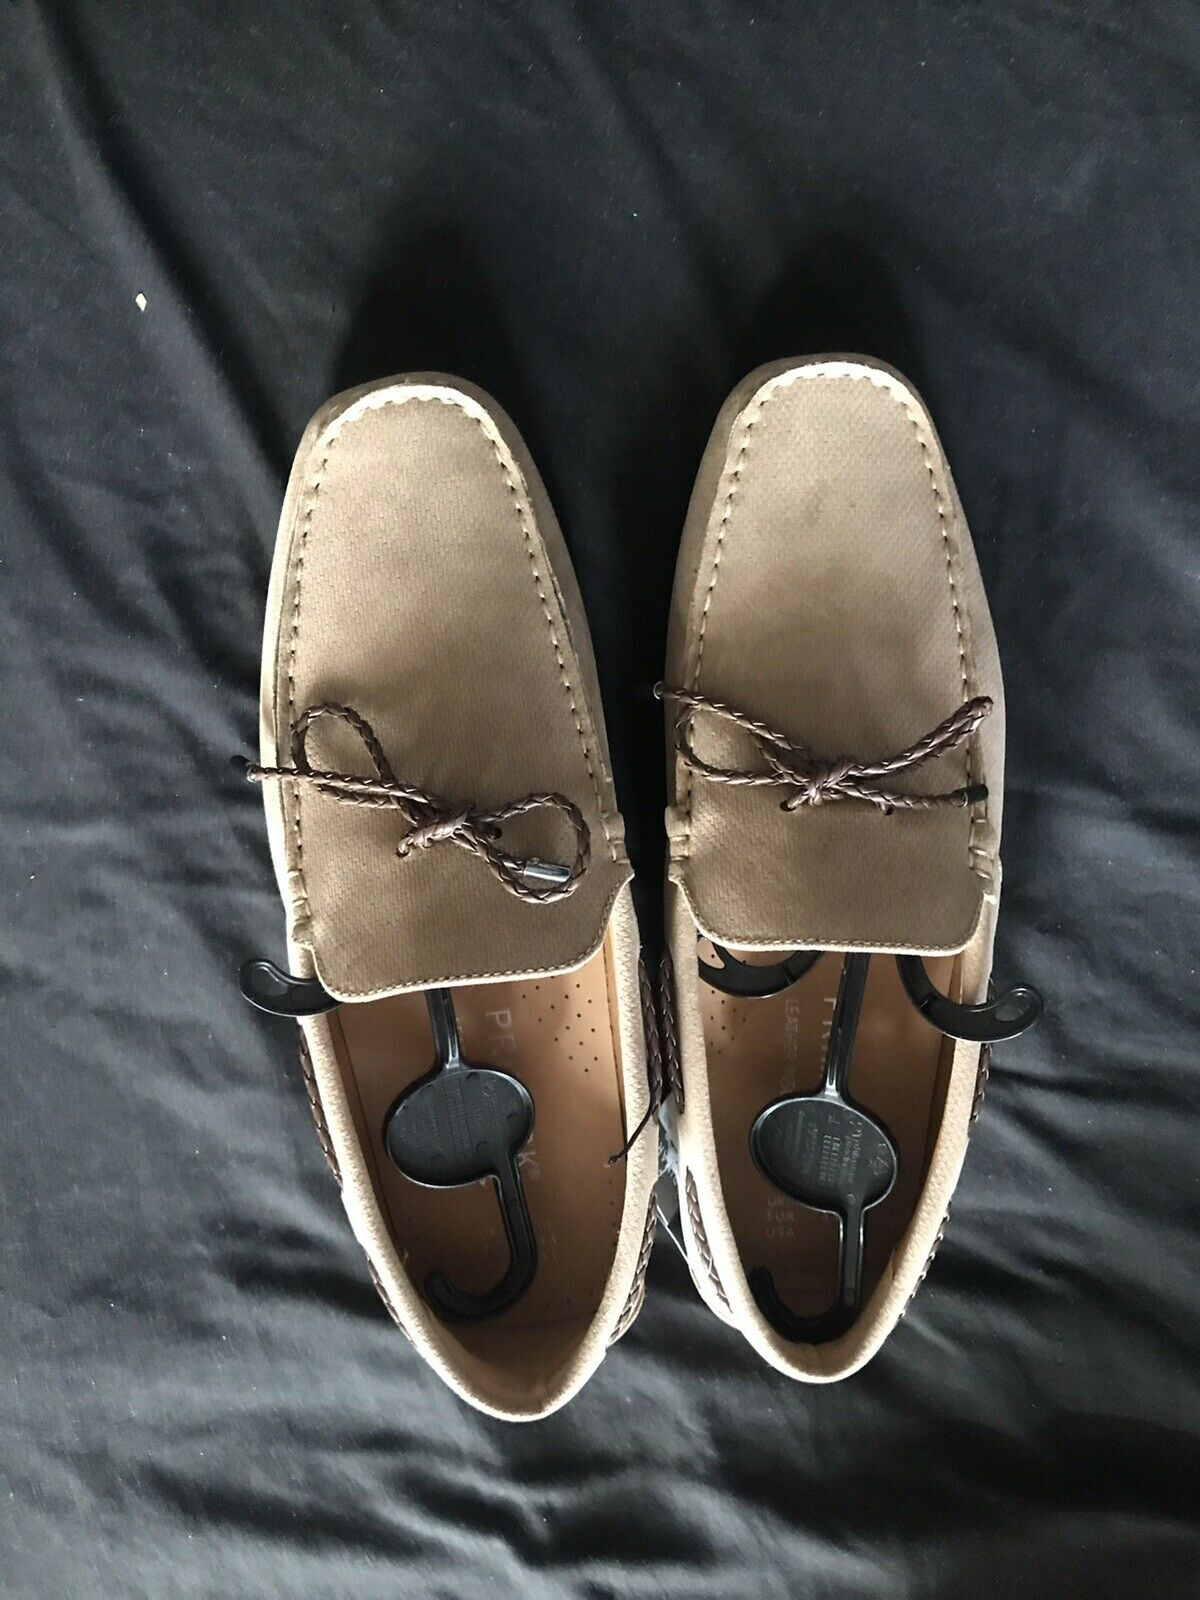 Brand New Mens Smart Casual Brown Loafers Shoes With String Laces Design. Size 9